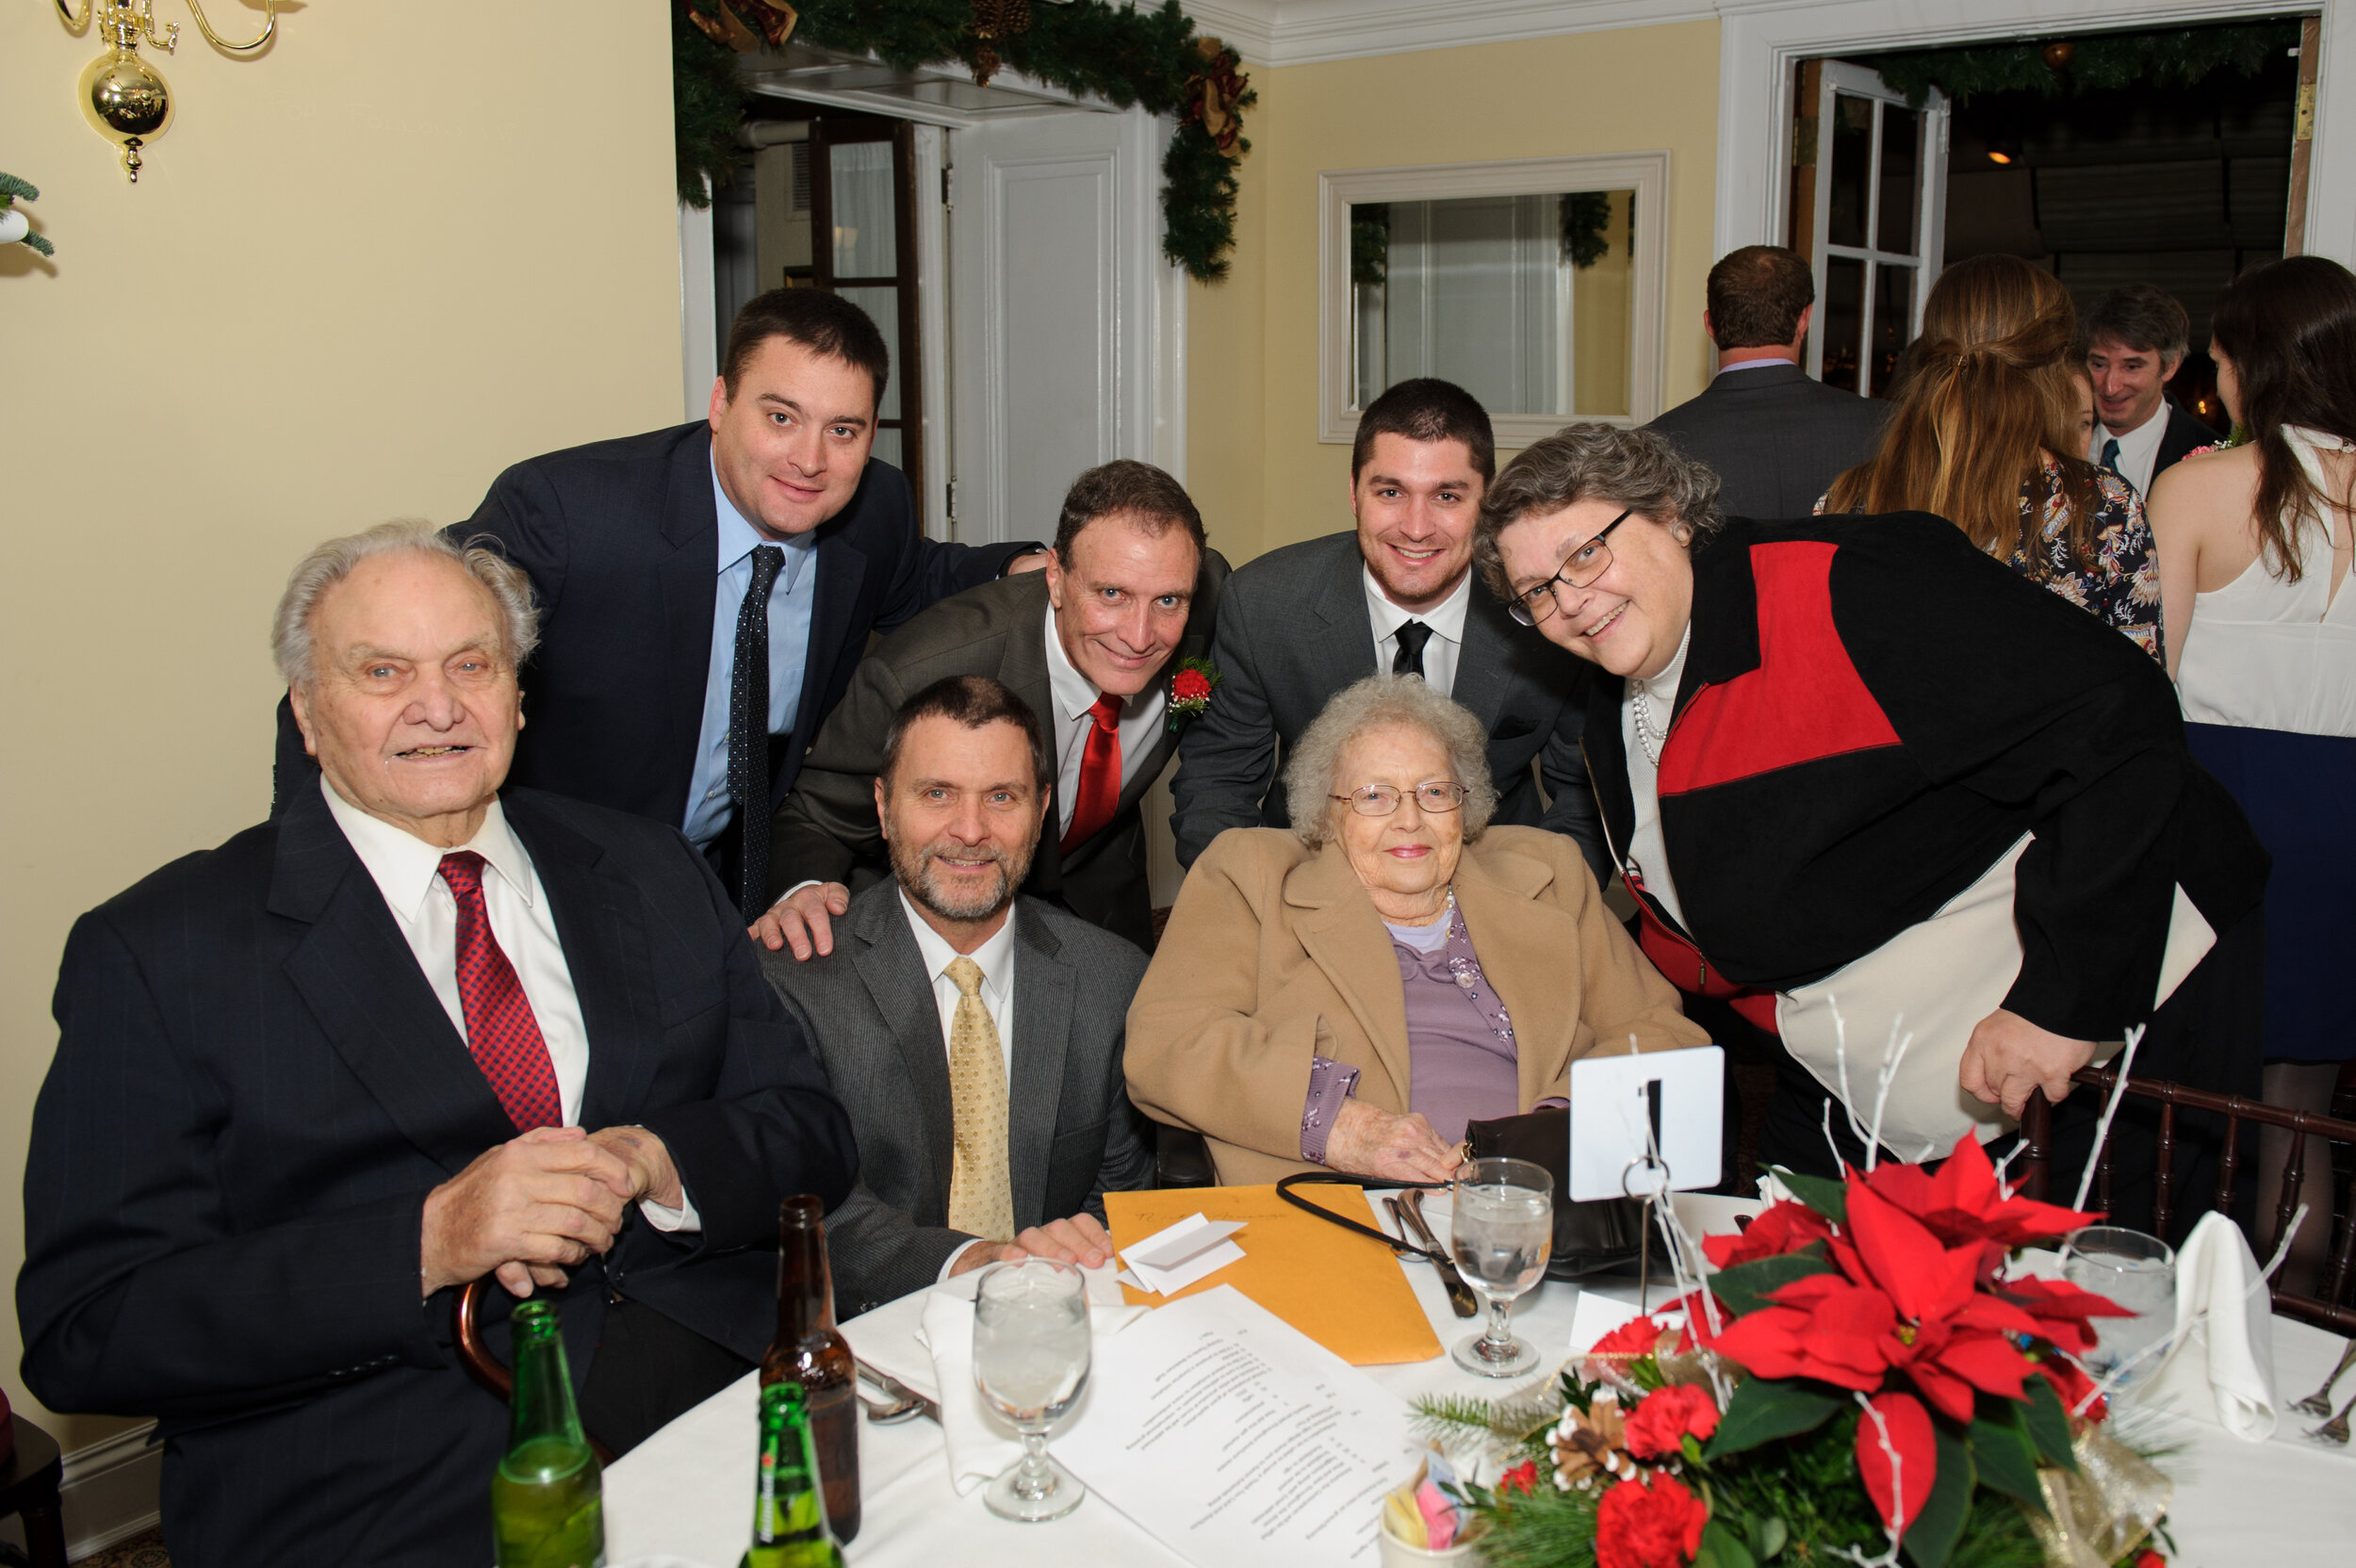 The Ascienzo Family at the Ascienzo Family Foundation's Inaugural Winter Event (2016).   Standing: Nick's nephew Chris, Nick, nephew Andrew, and sister Terri (former AFF director)  Sitting: Nick's dad, brother John, and mom, who passed away in 2016.